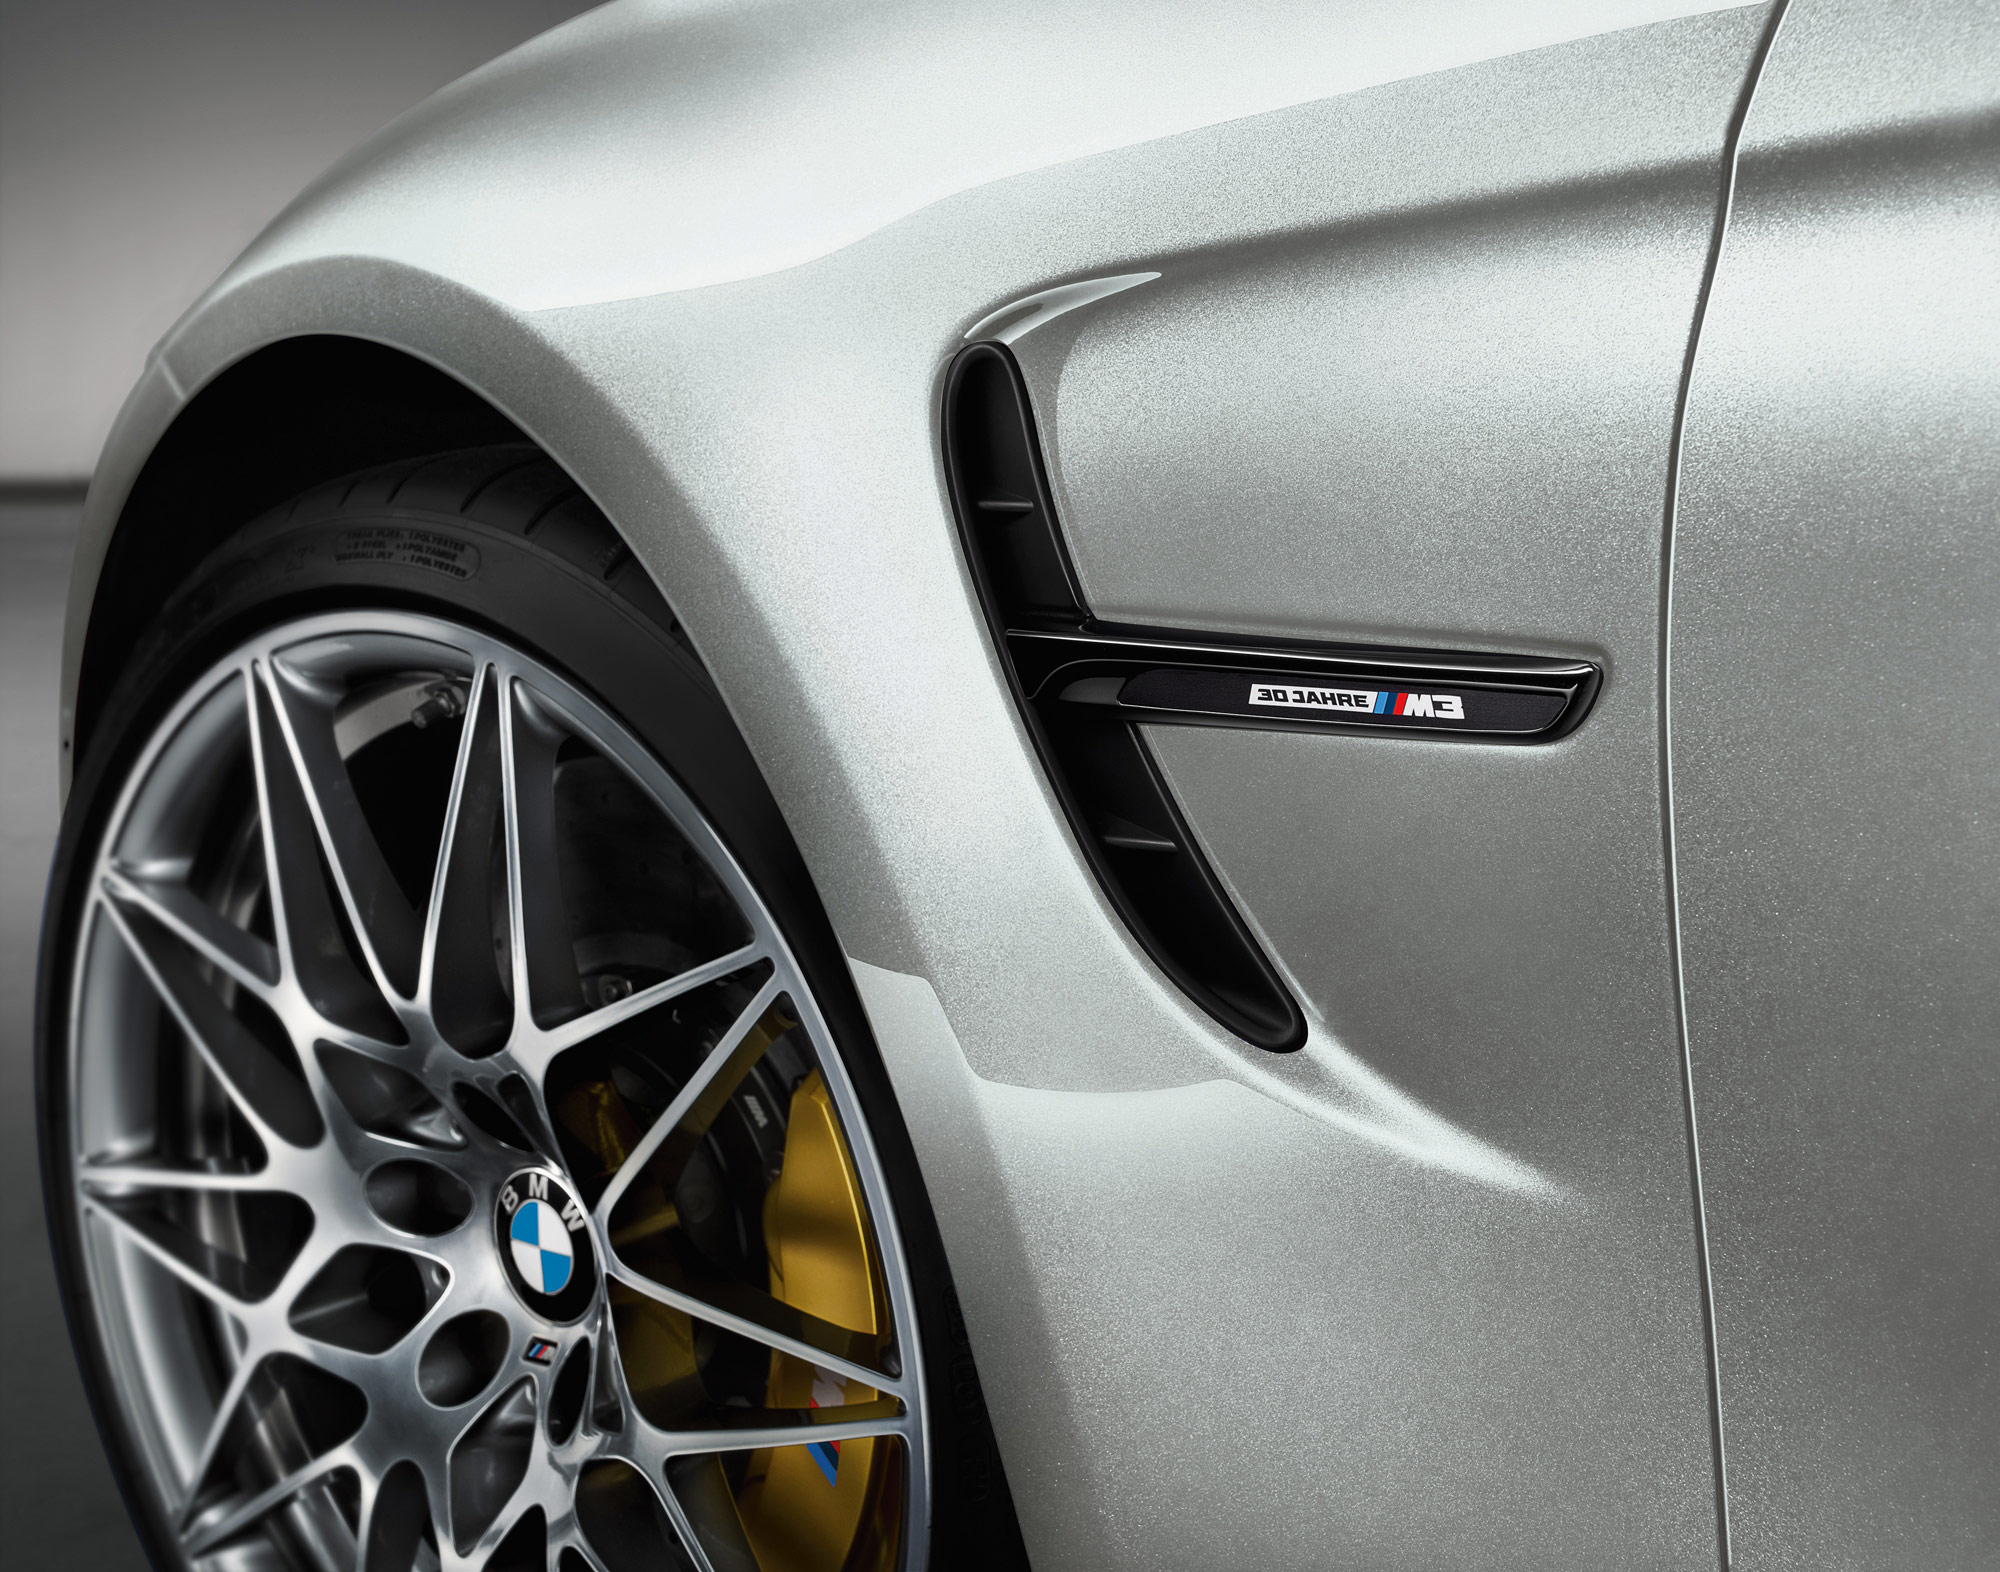 The BMW M3 30 Jahre Edition - Celebrating 30 Years Of Brilliance 7